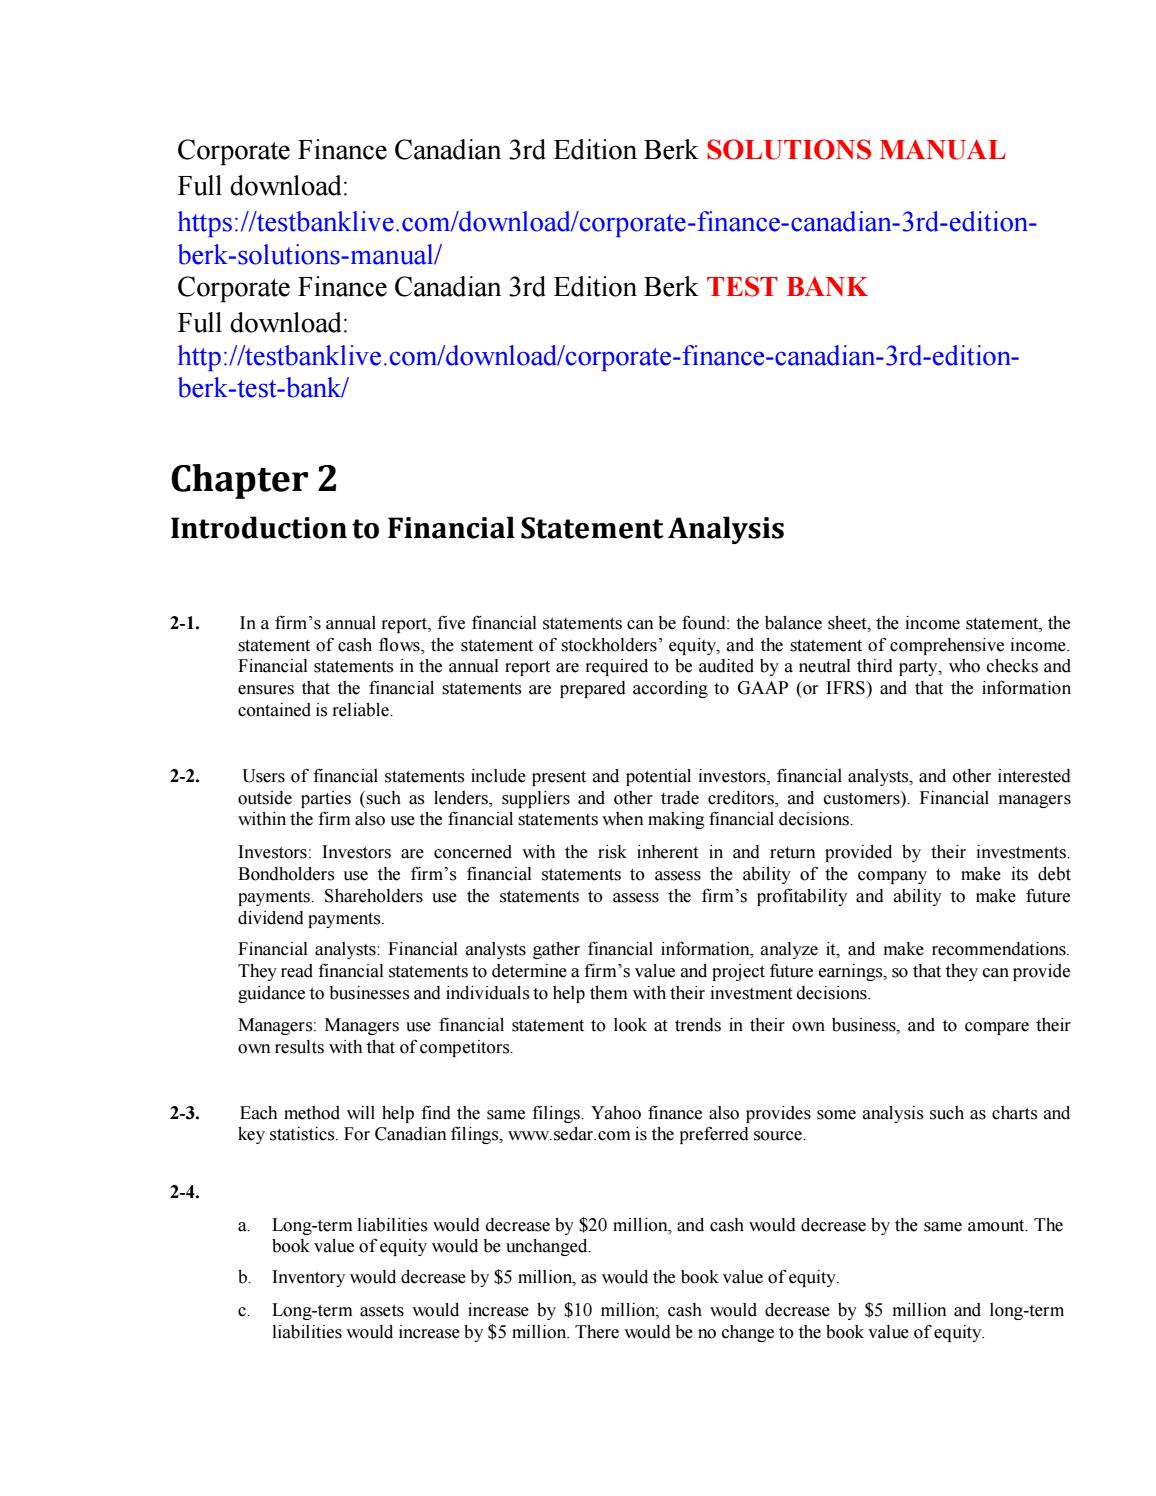 Corporate finance canadian 3rd edition berk solutions manual by calevin5637  - issuu